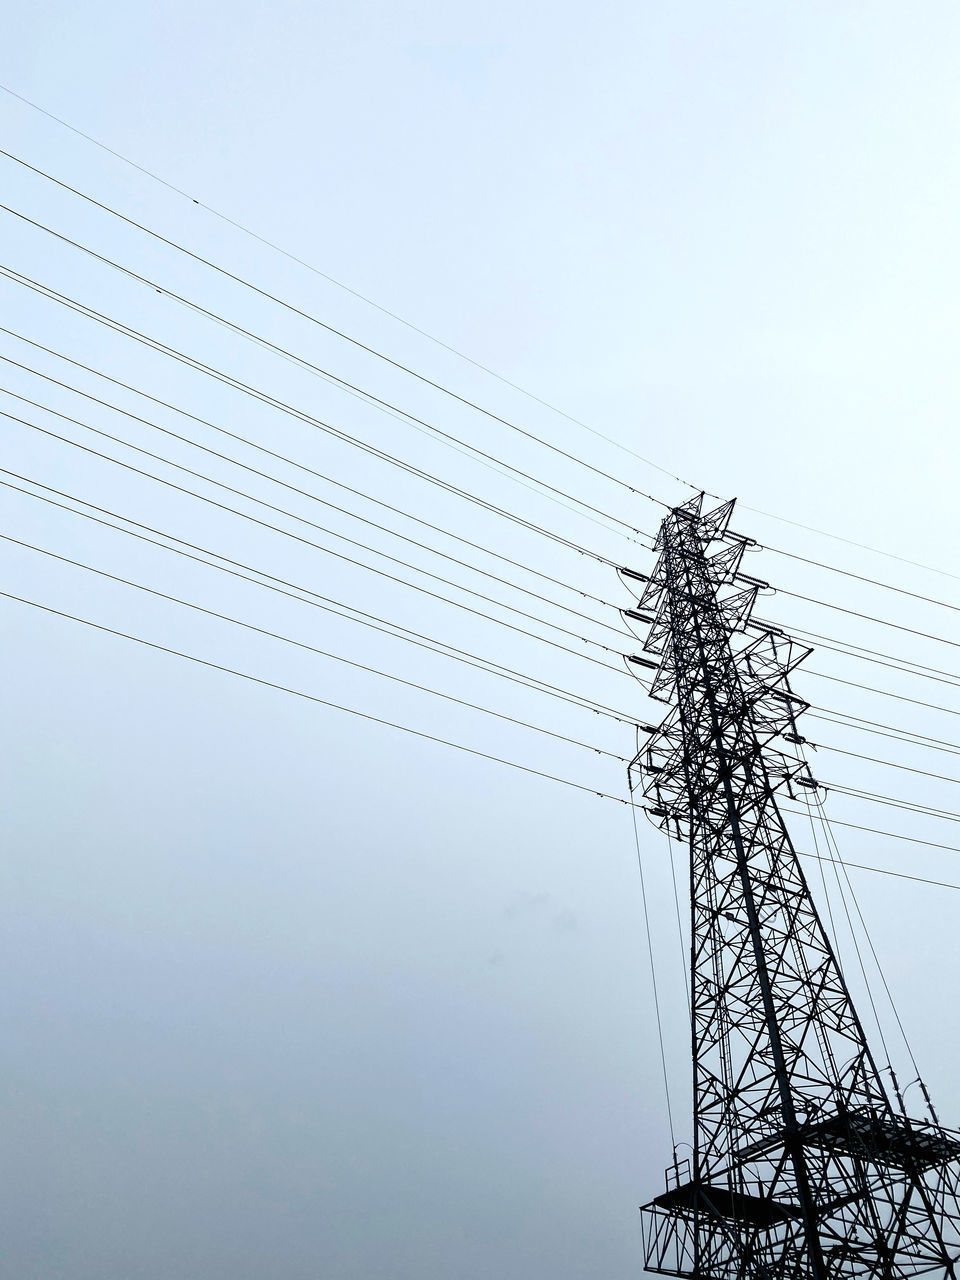 LOW ANGLE VIEW OF SILHOUETTE ELECTRICITY PYLONS AGAINST SKY